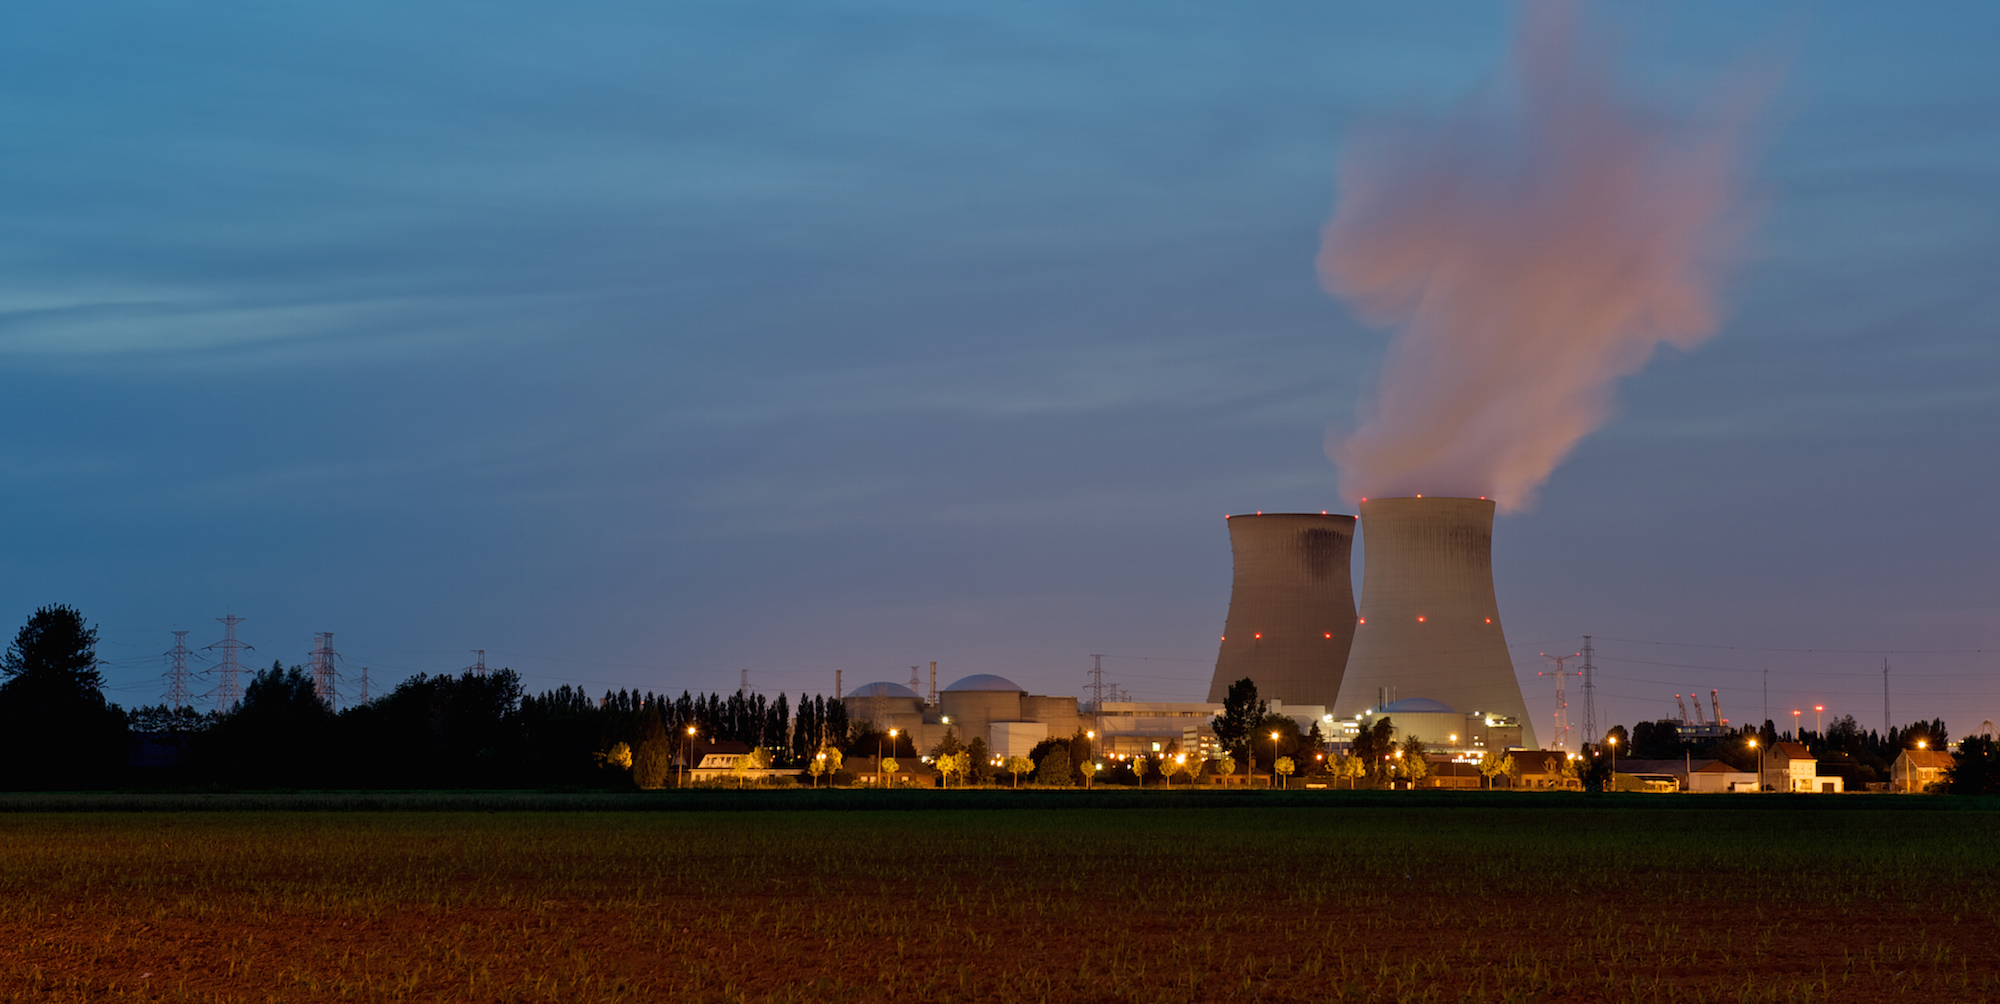 Belgian nuclear plants under scrutiny by neighbour countries